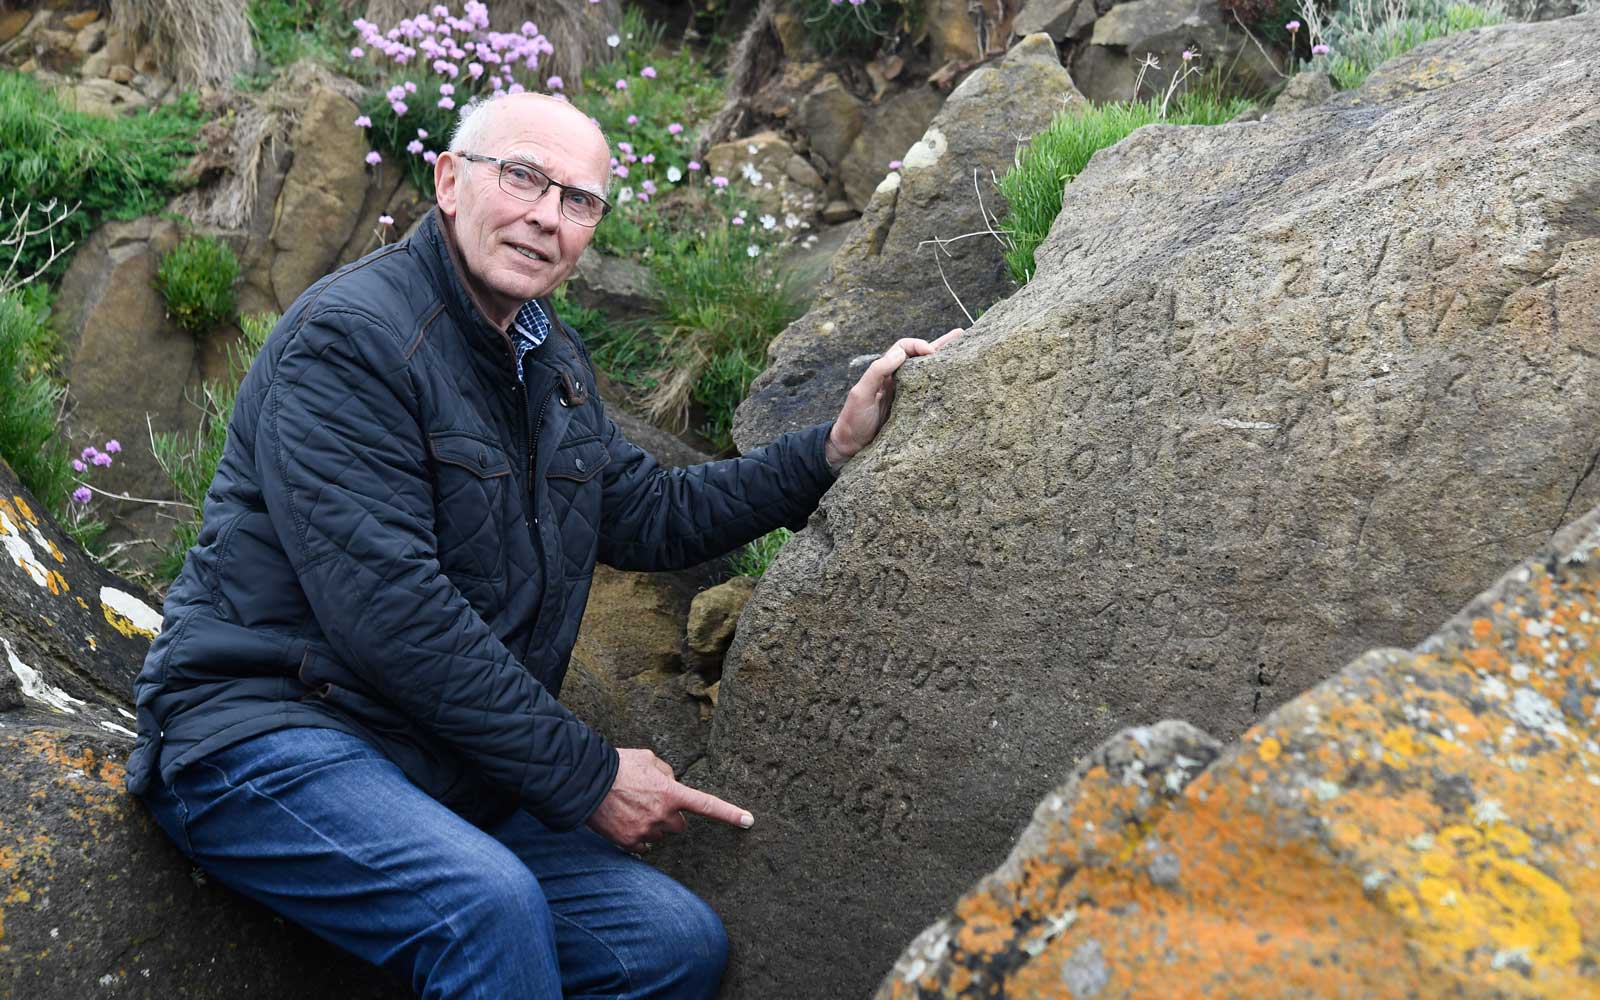 French local councillor in charge of small heritage Michel Paugam poses on May 7, 2019 as he shows inscriptions composing indecipherable words on a rock in the Brittany village of Plougastel-Daoulas.